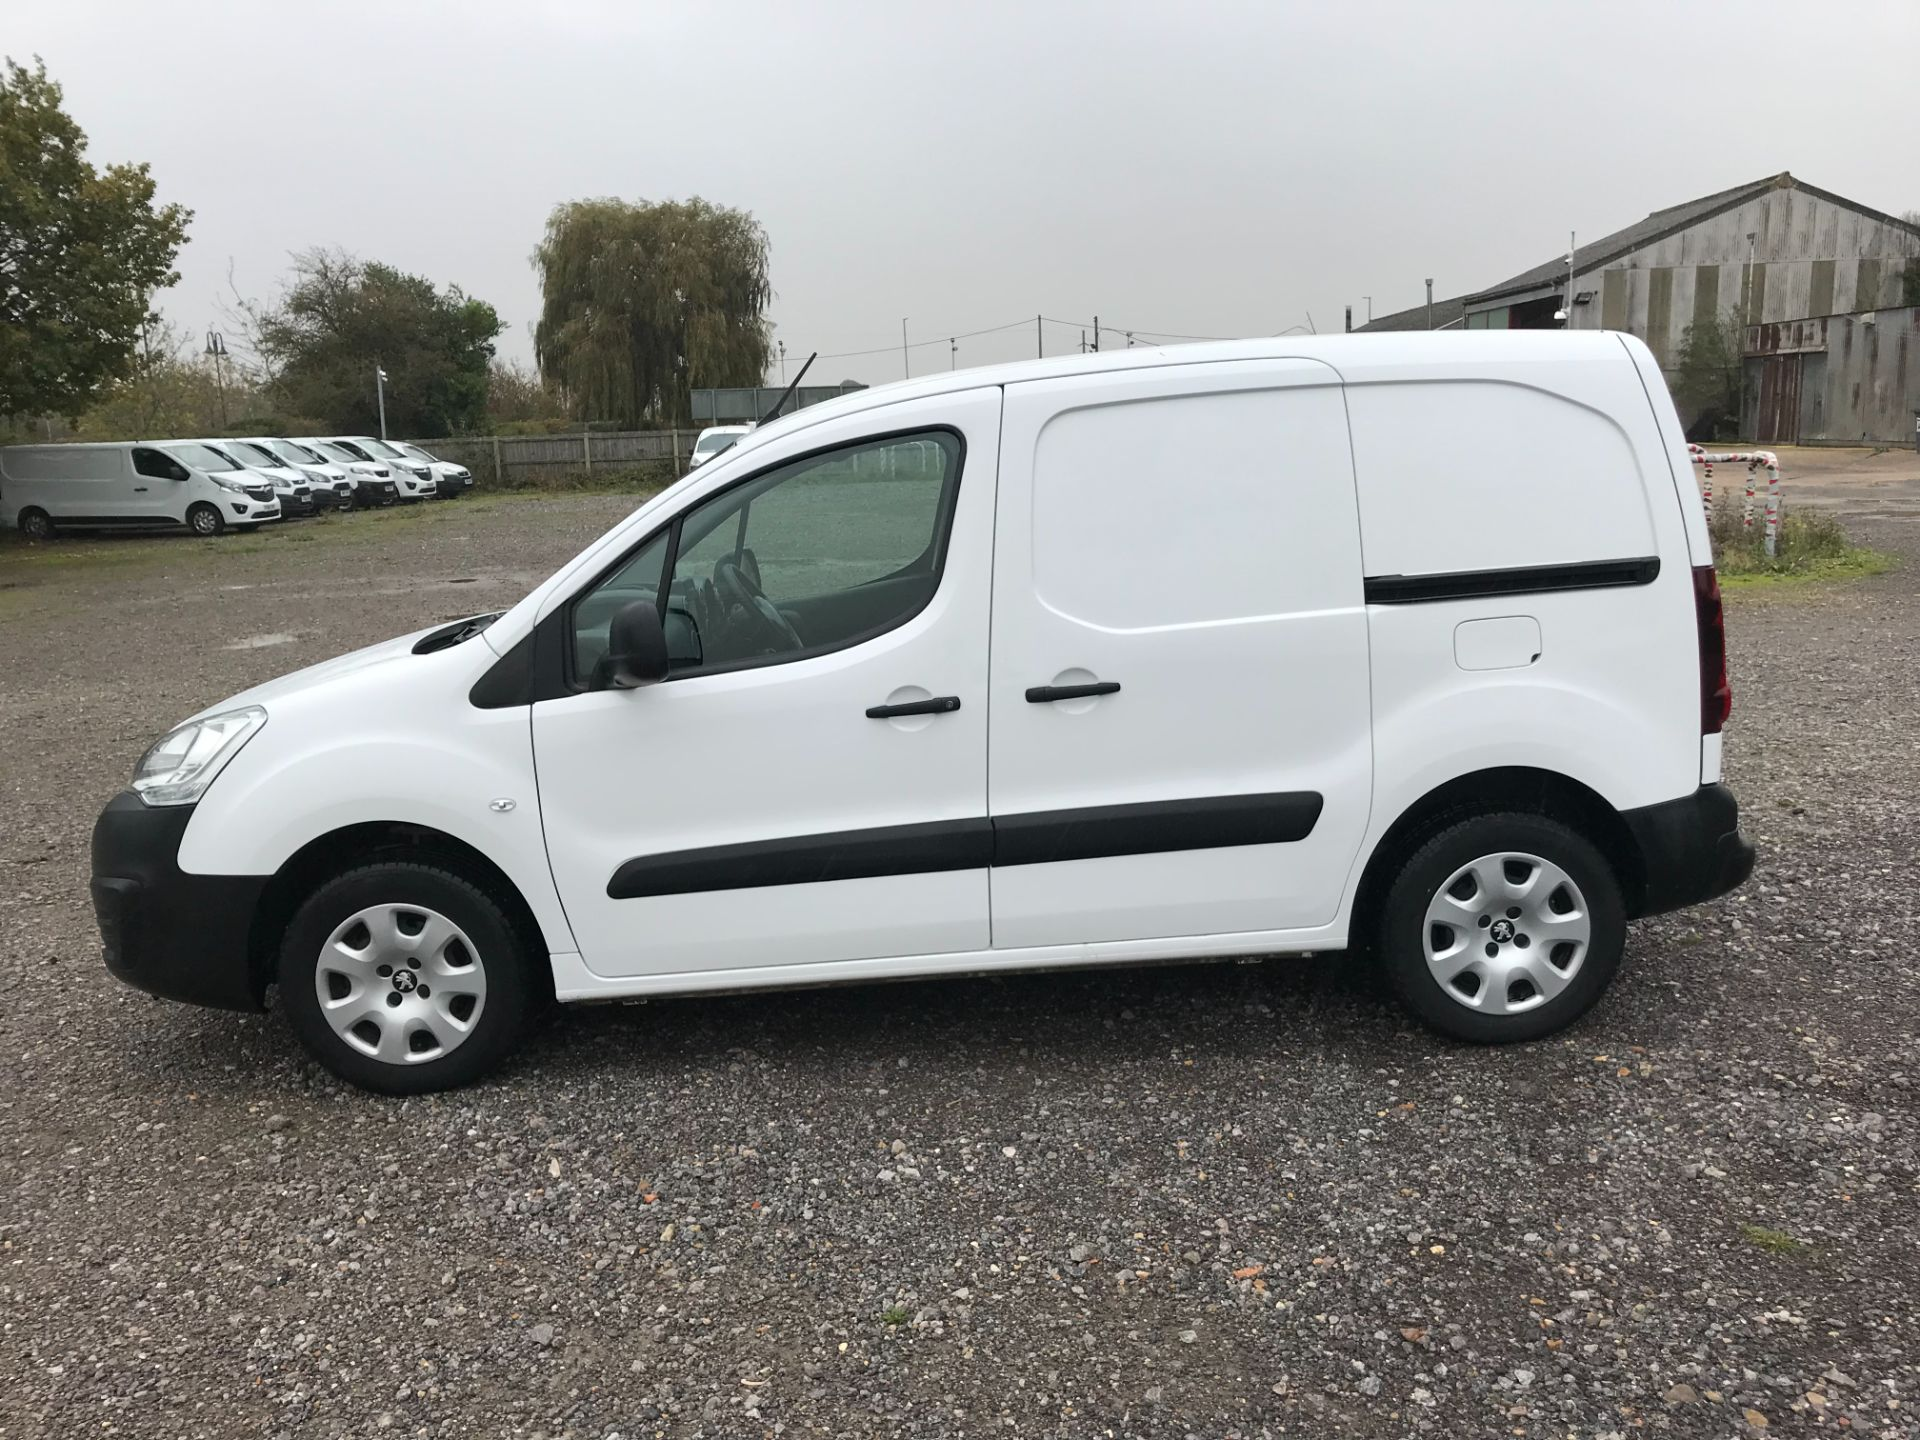 2018 Peugeot Partner 850 1.6 Bluehdi 100 Professional Van [Non Ss] *Restricted to 70 MPH* Euro 6 (NV18HTD) Image 7